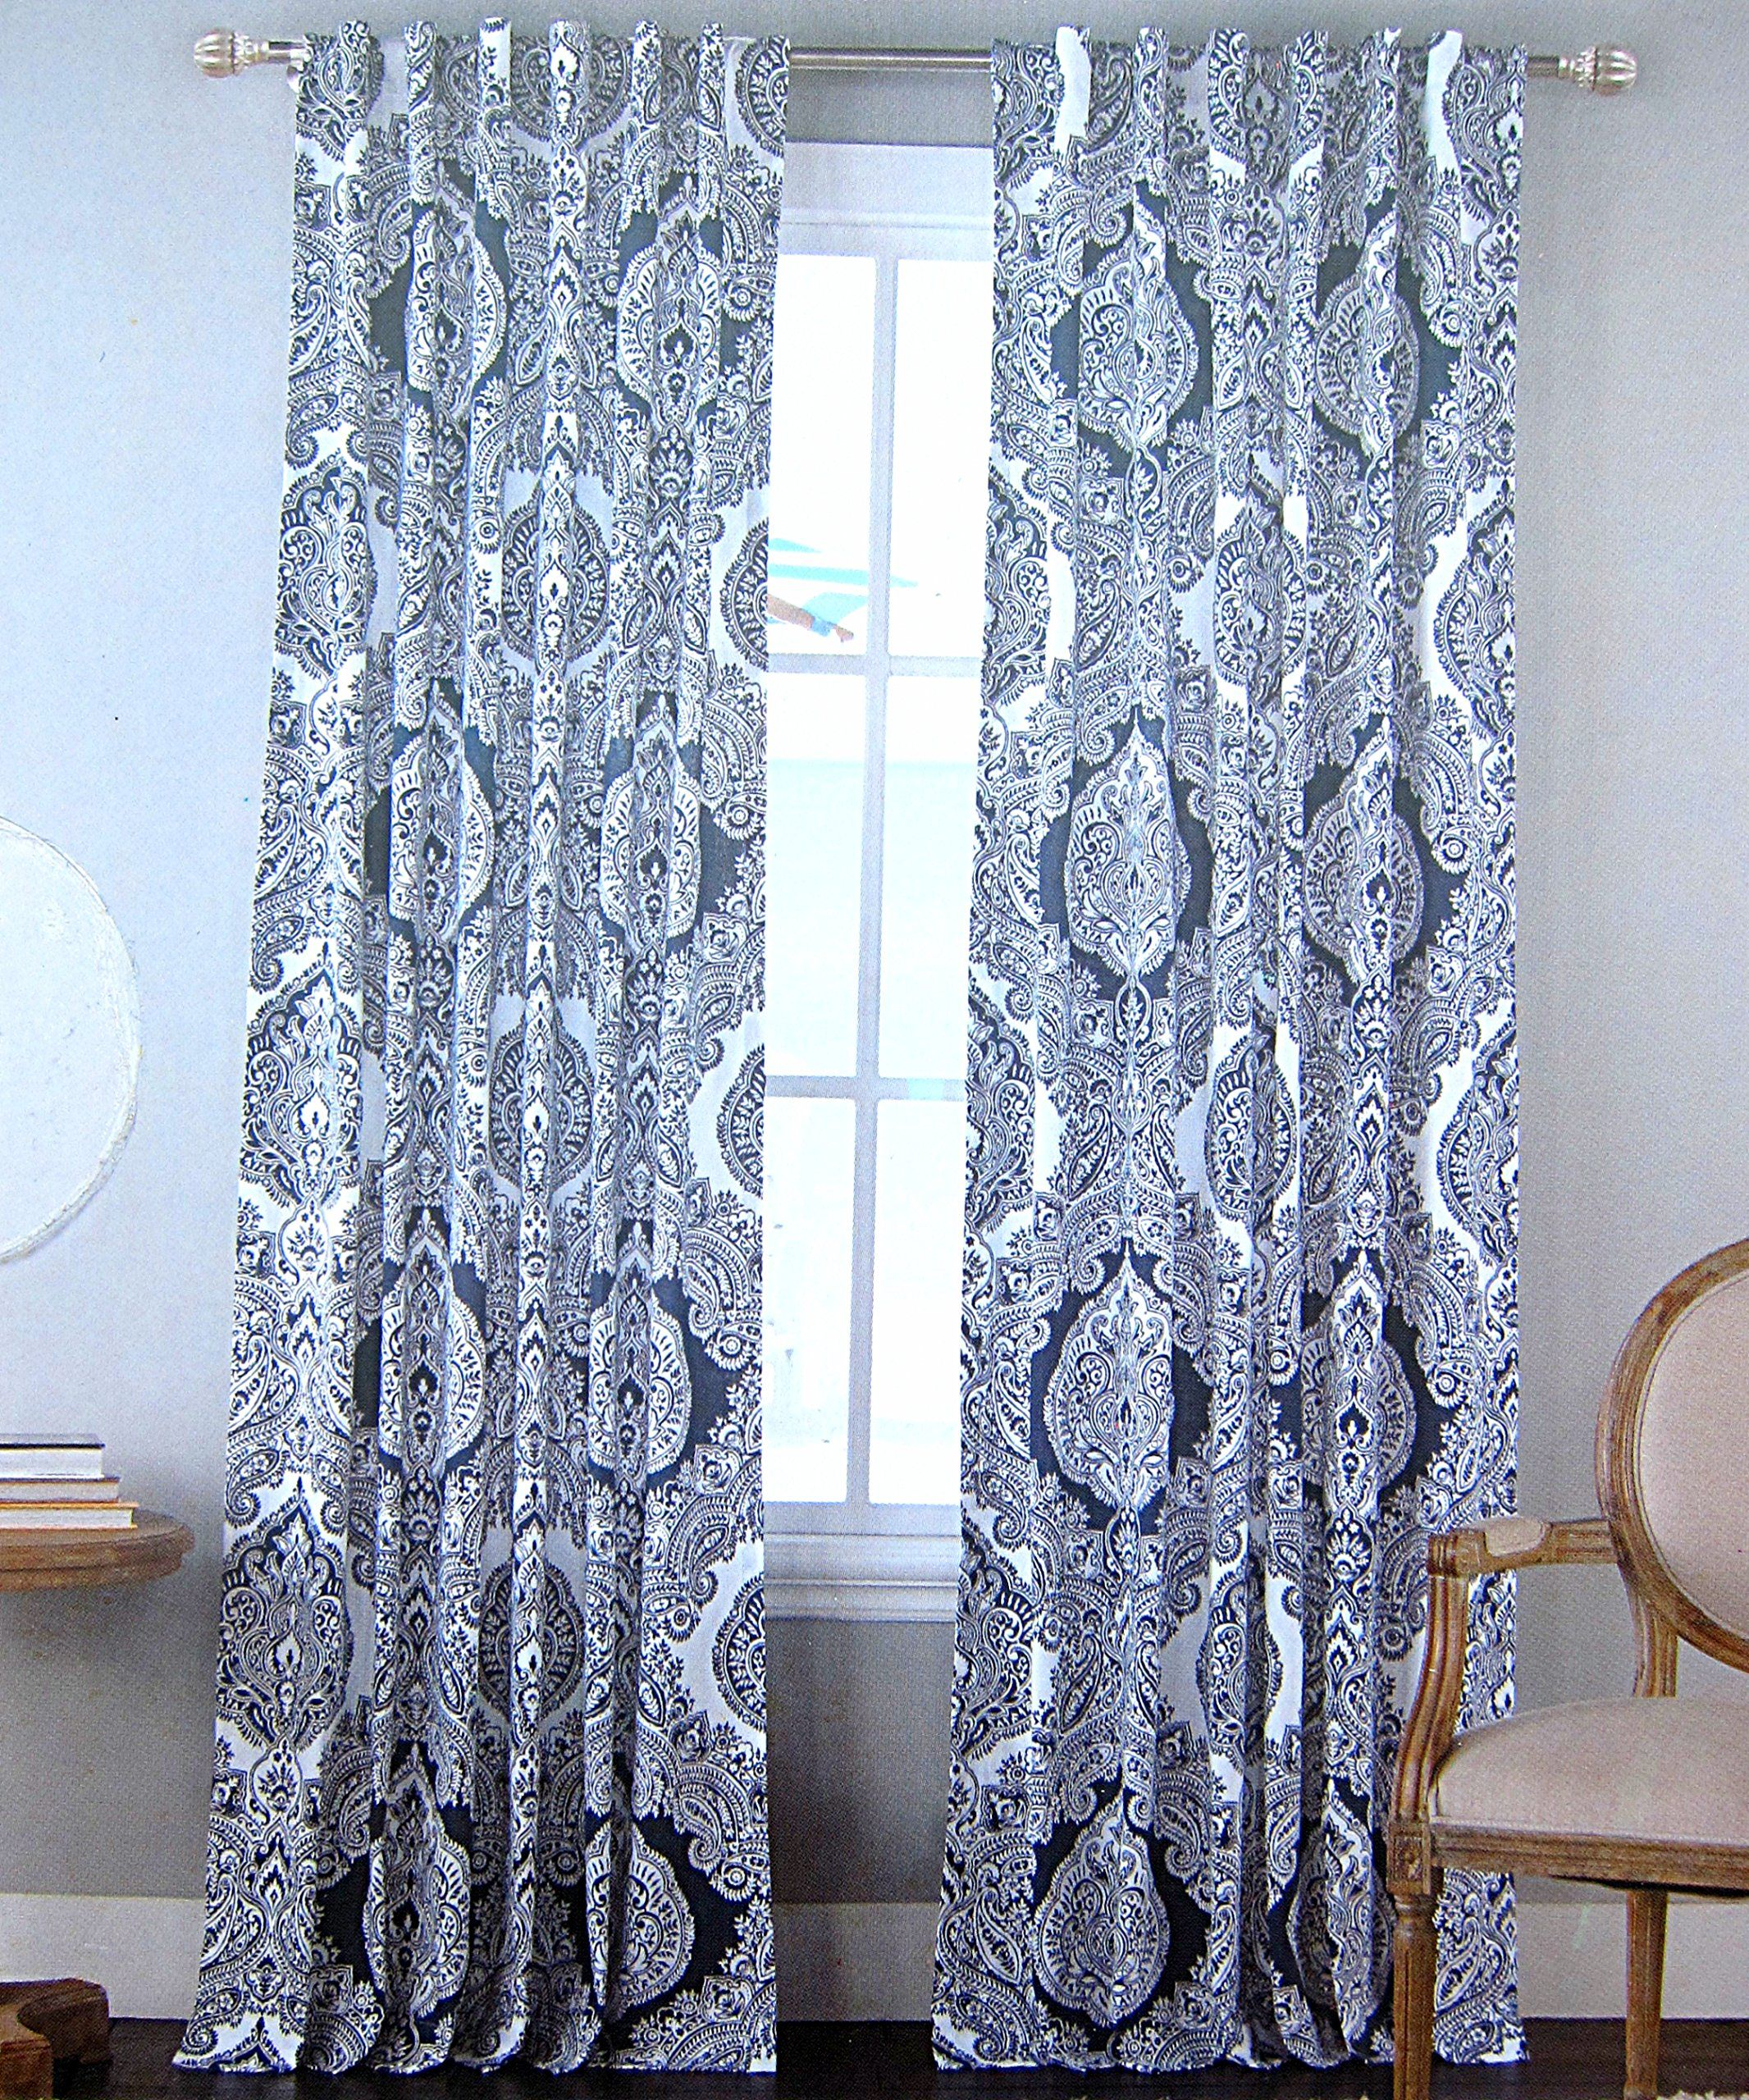 Envogue Window Curtains Paisley Damask Medallions Navy Blue White 50 By 96 Inches